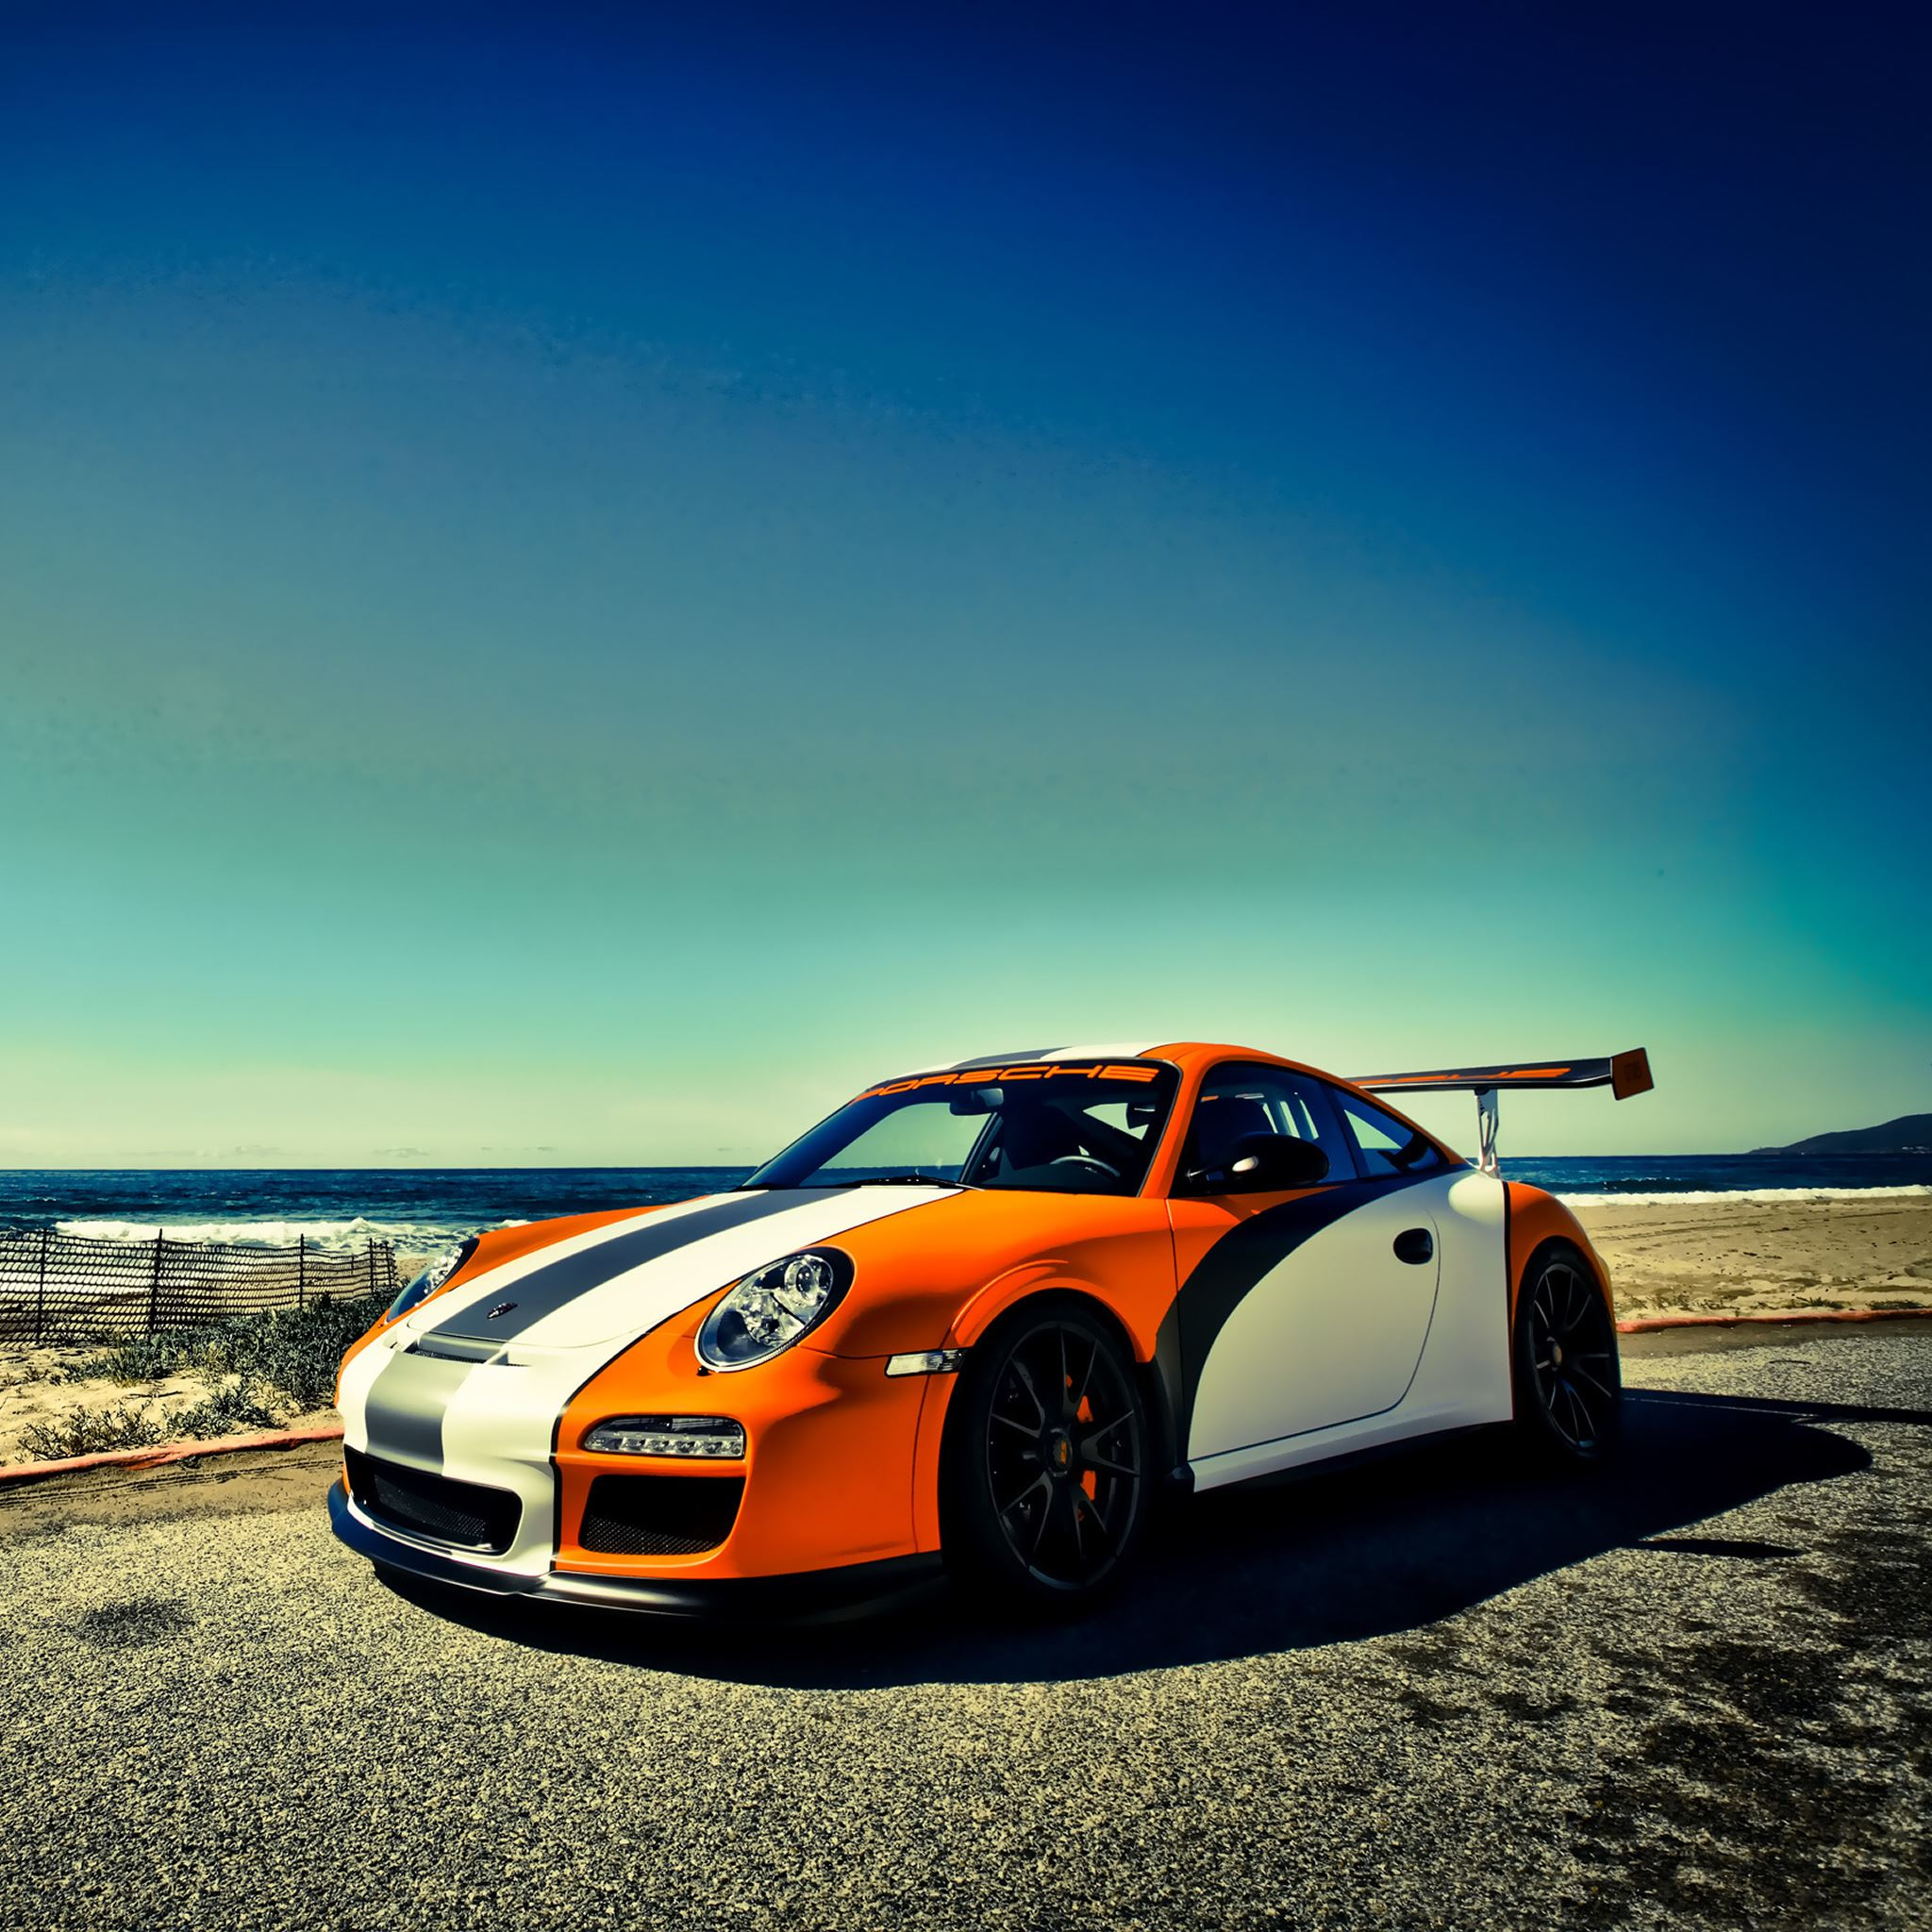 porsche ipad air wallpaper download | iphone wallpapers, ipad